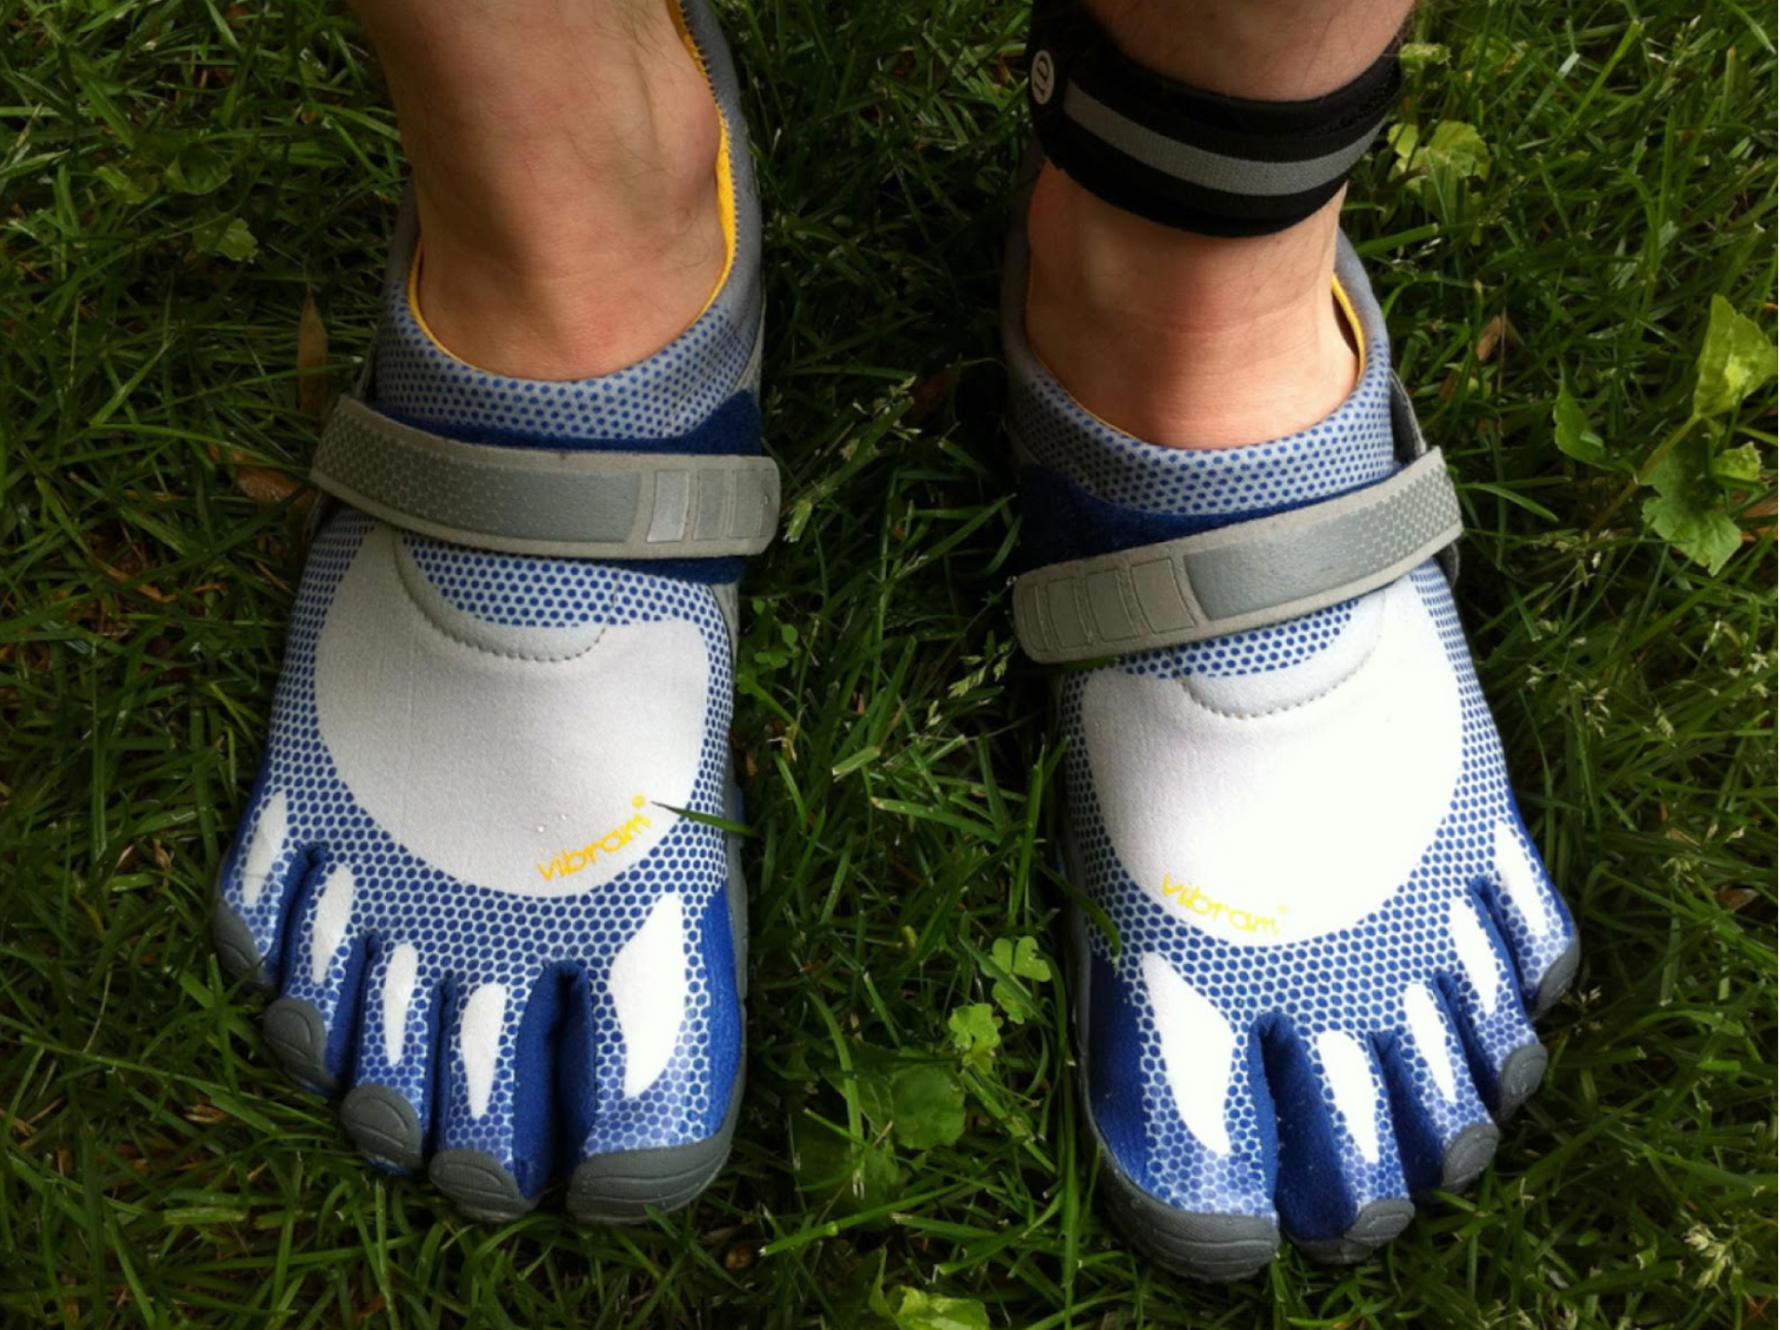 Vancouver podiatry Minimalist Shoes and Barefoot Running